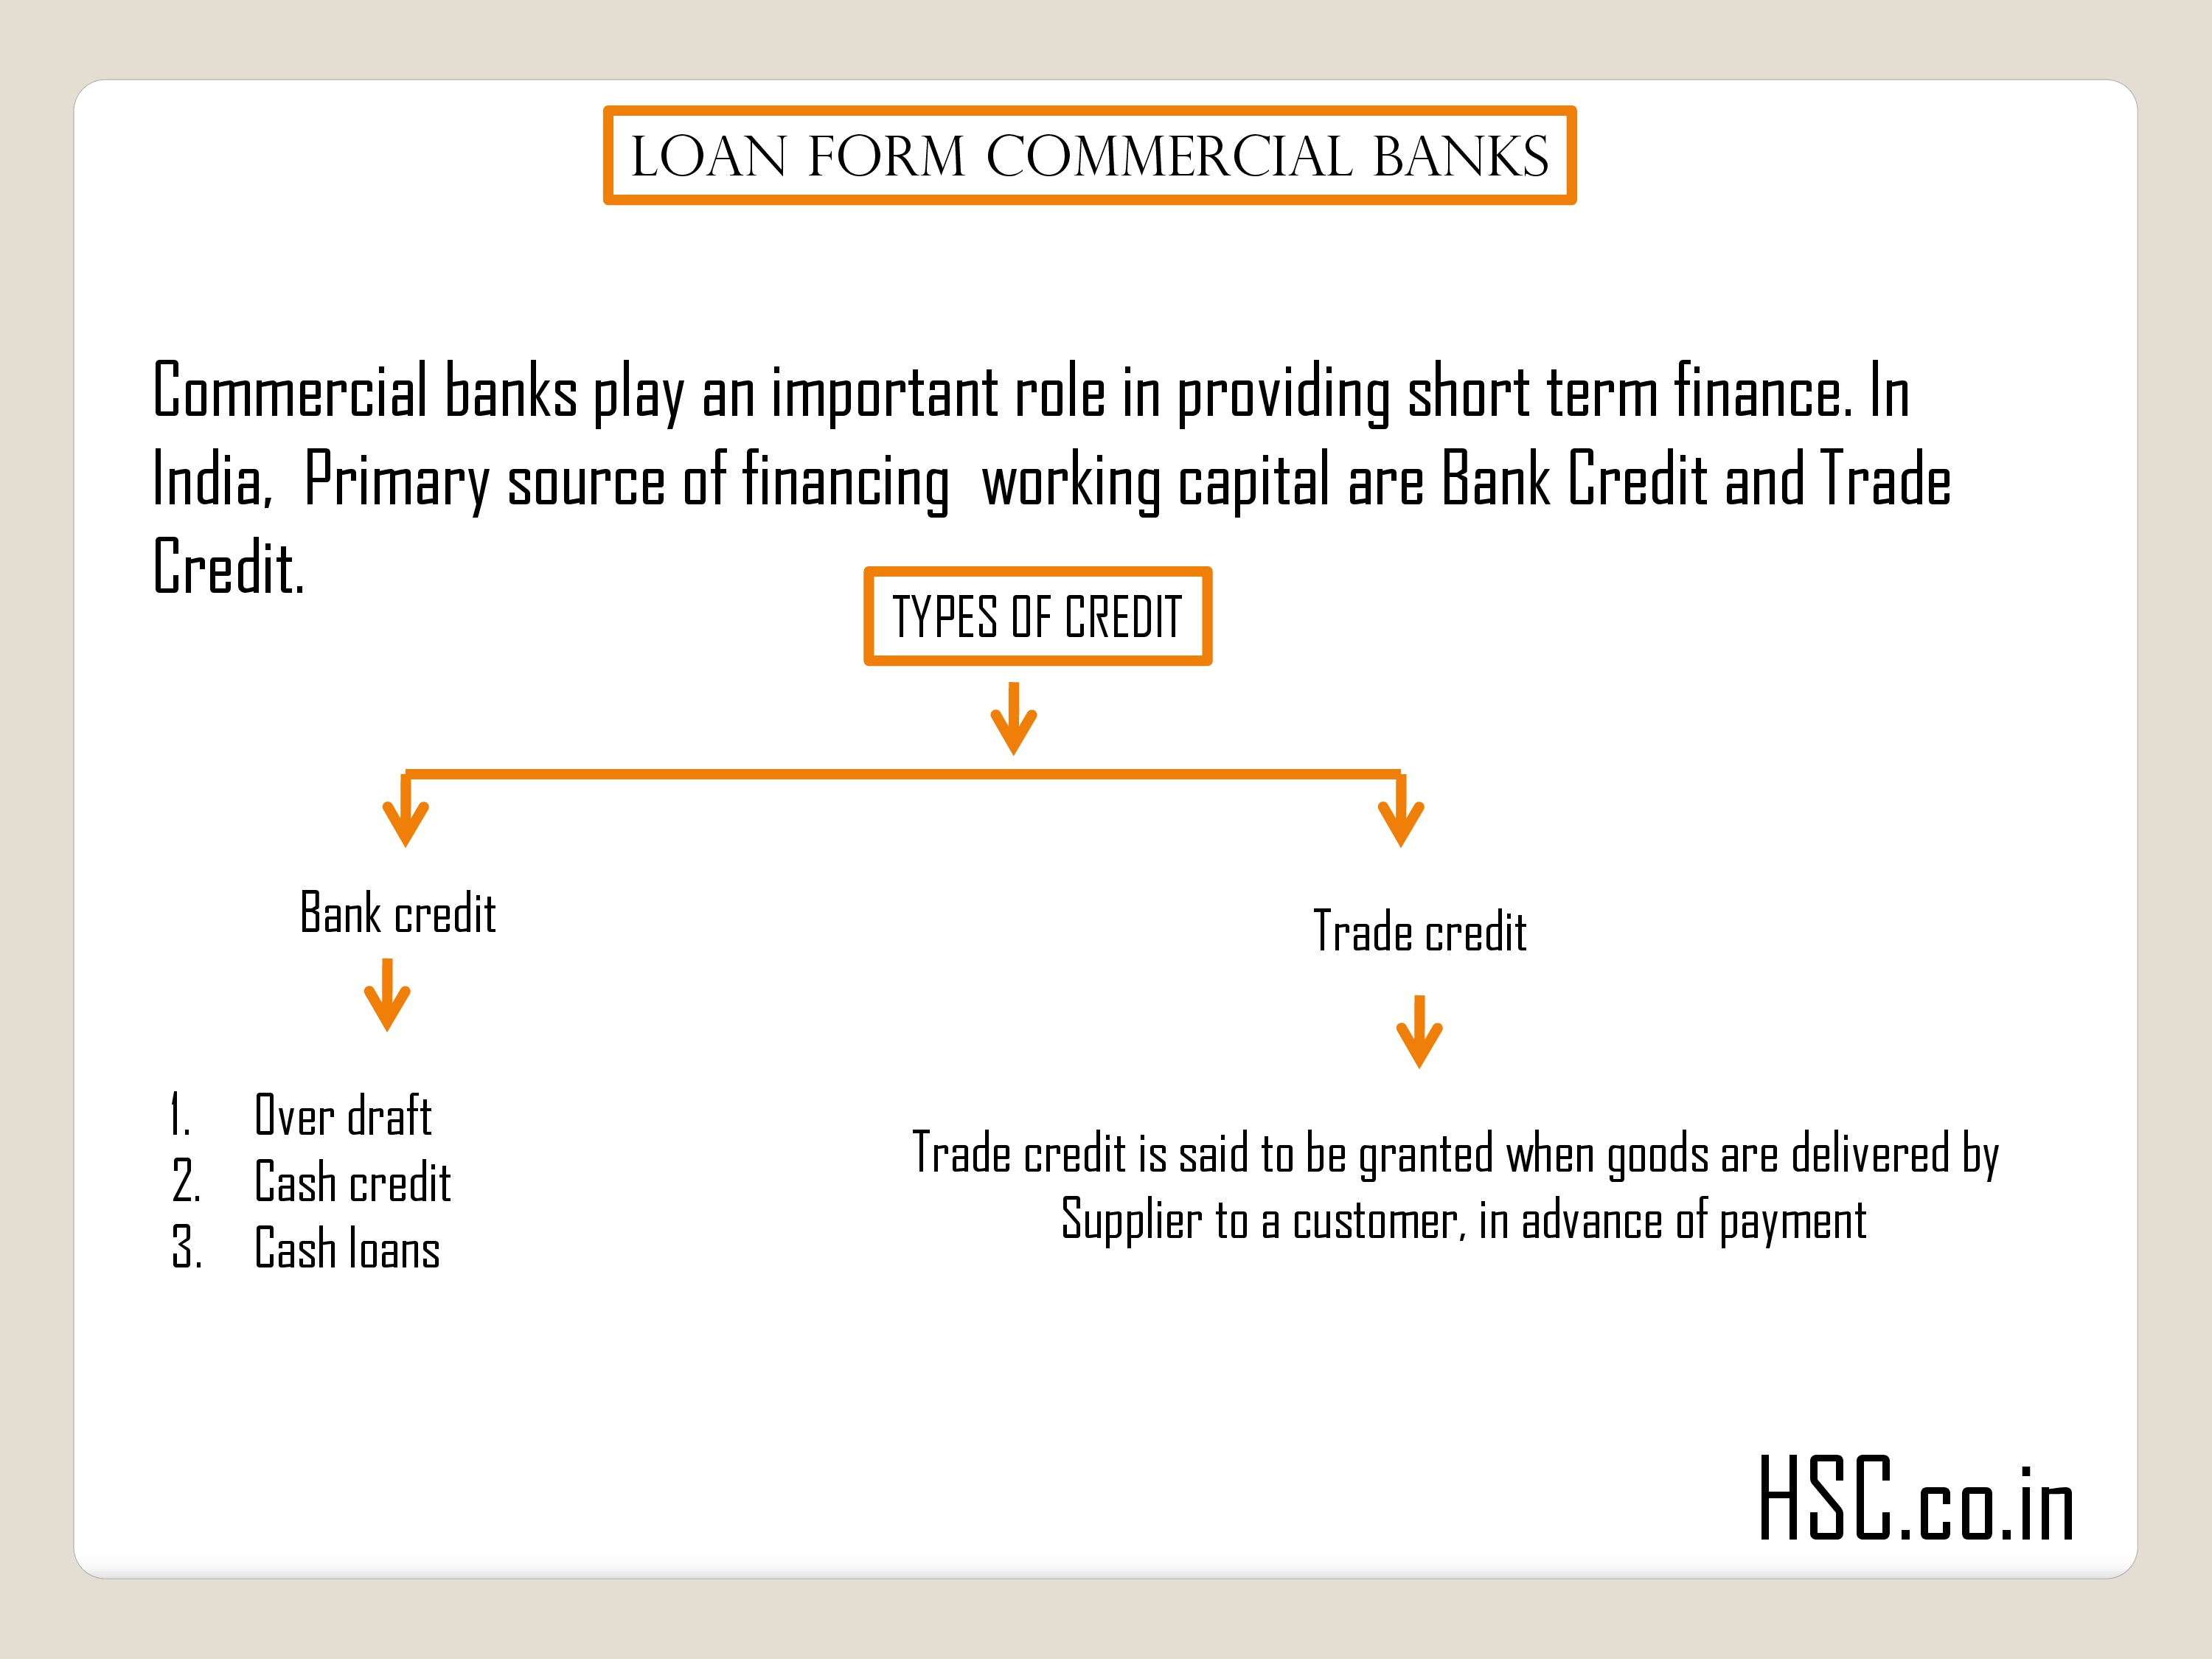 Loan form commercial banks